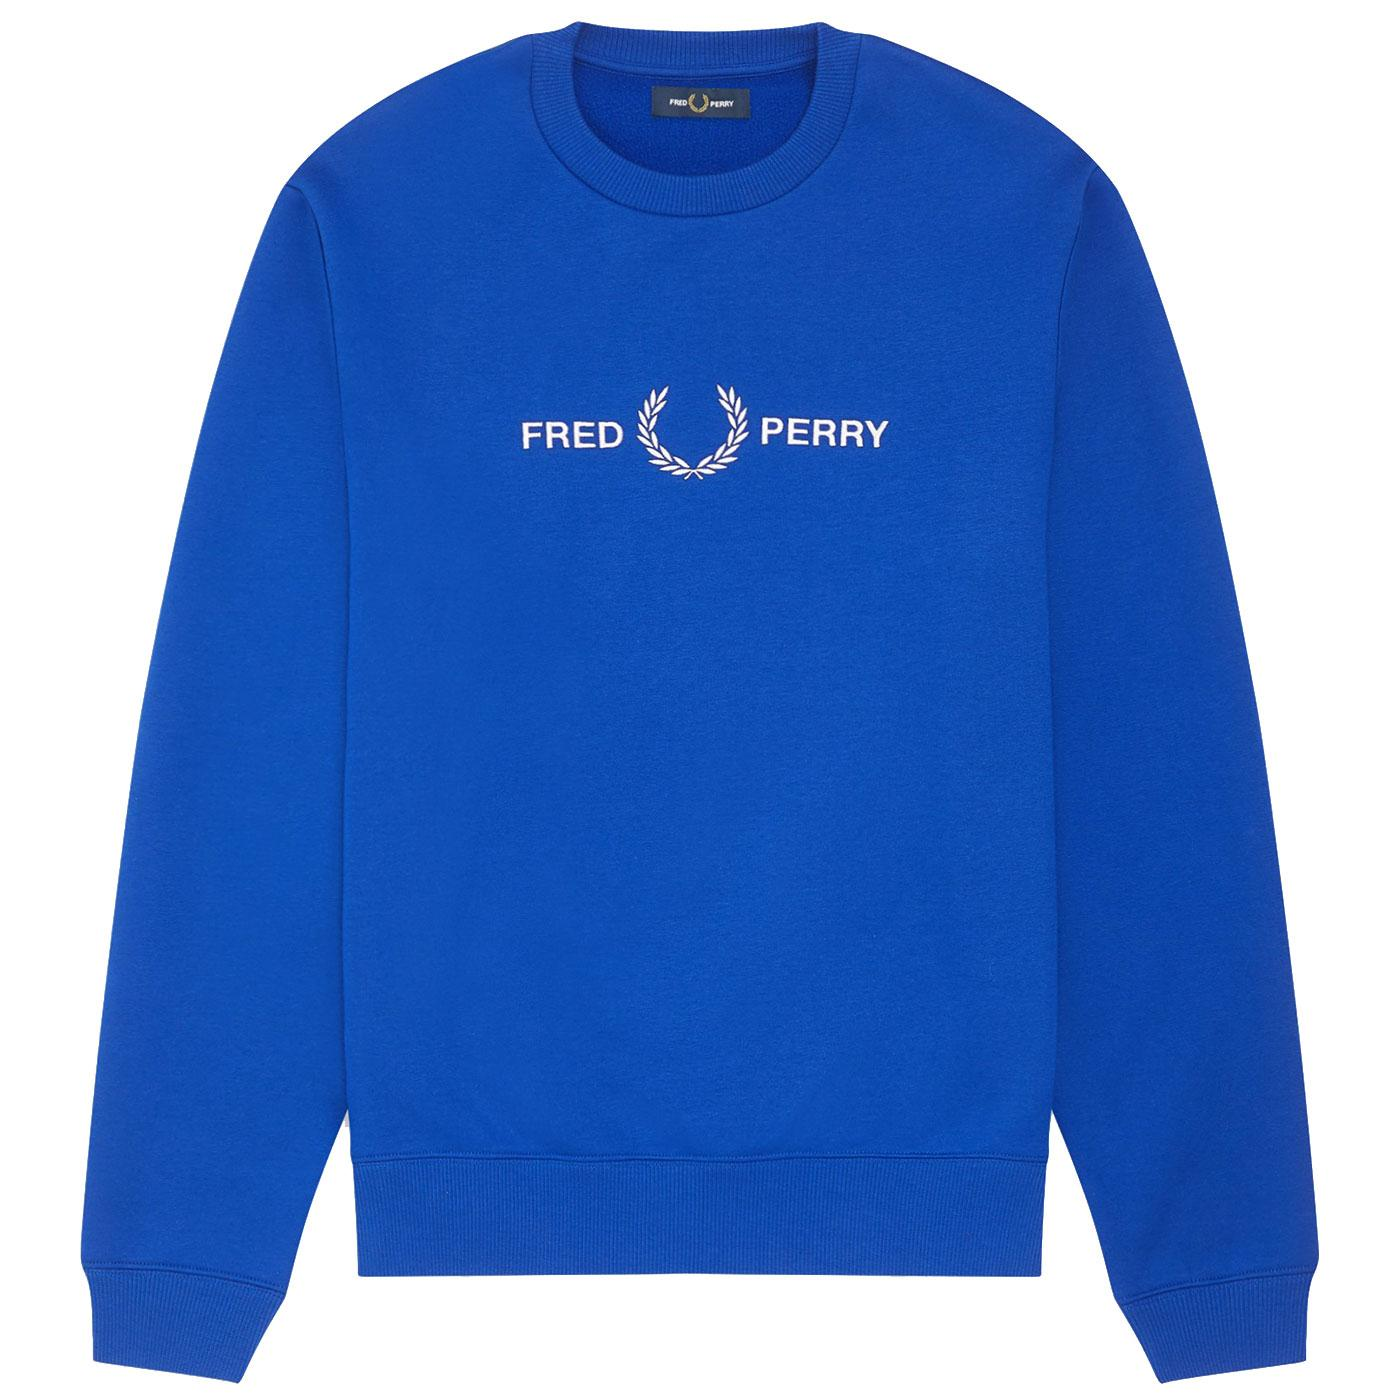 FRED PERRY Men's Graphic Chest Logo Sweatshirt